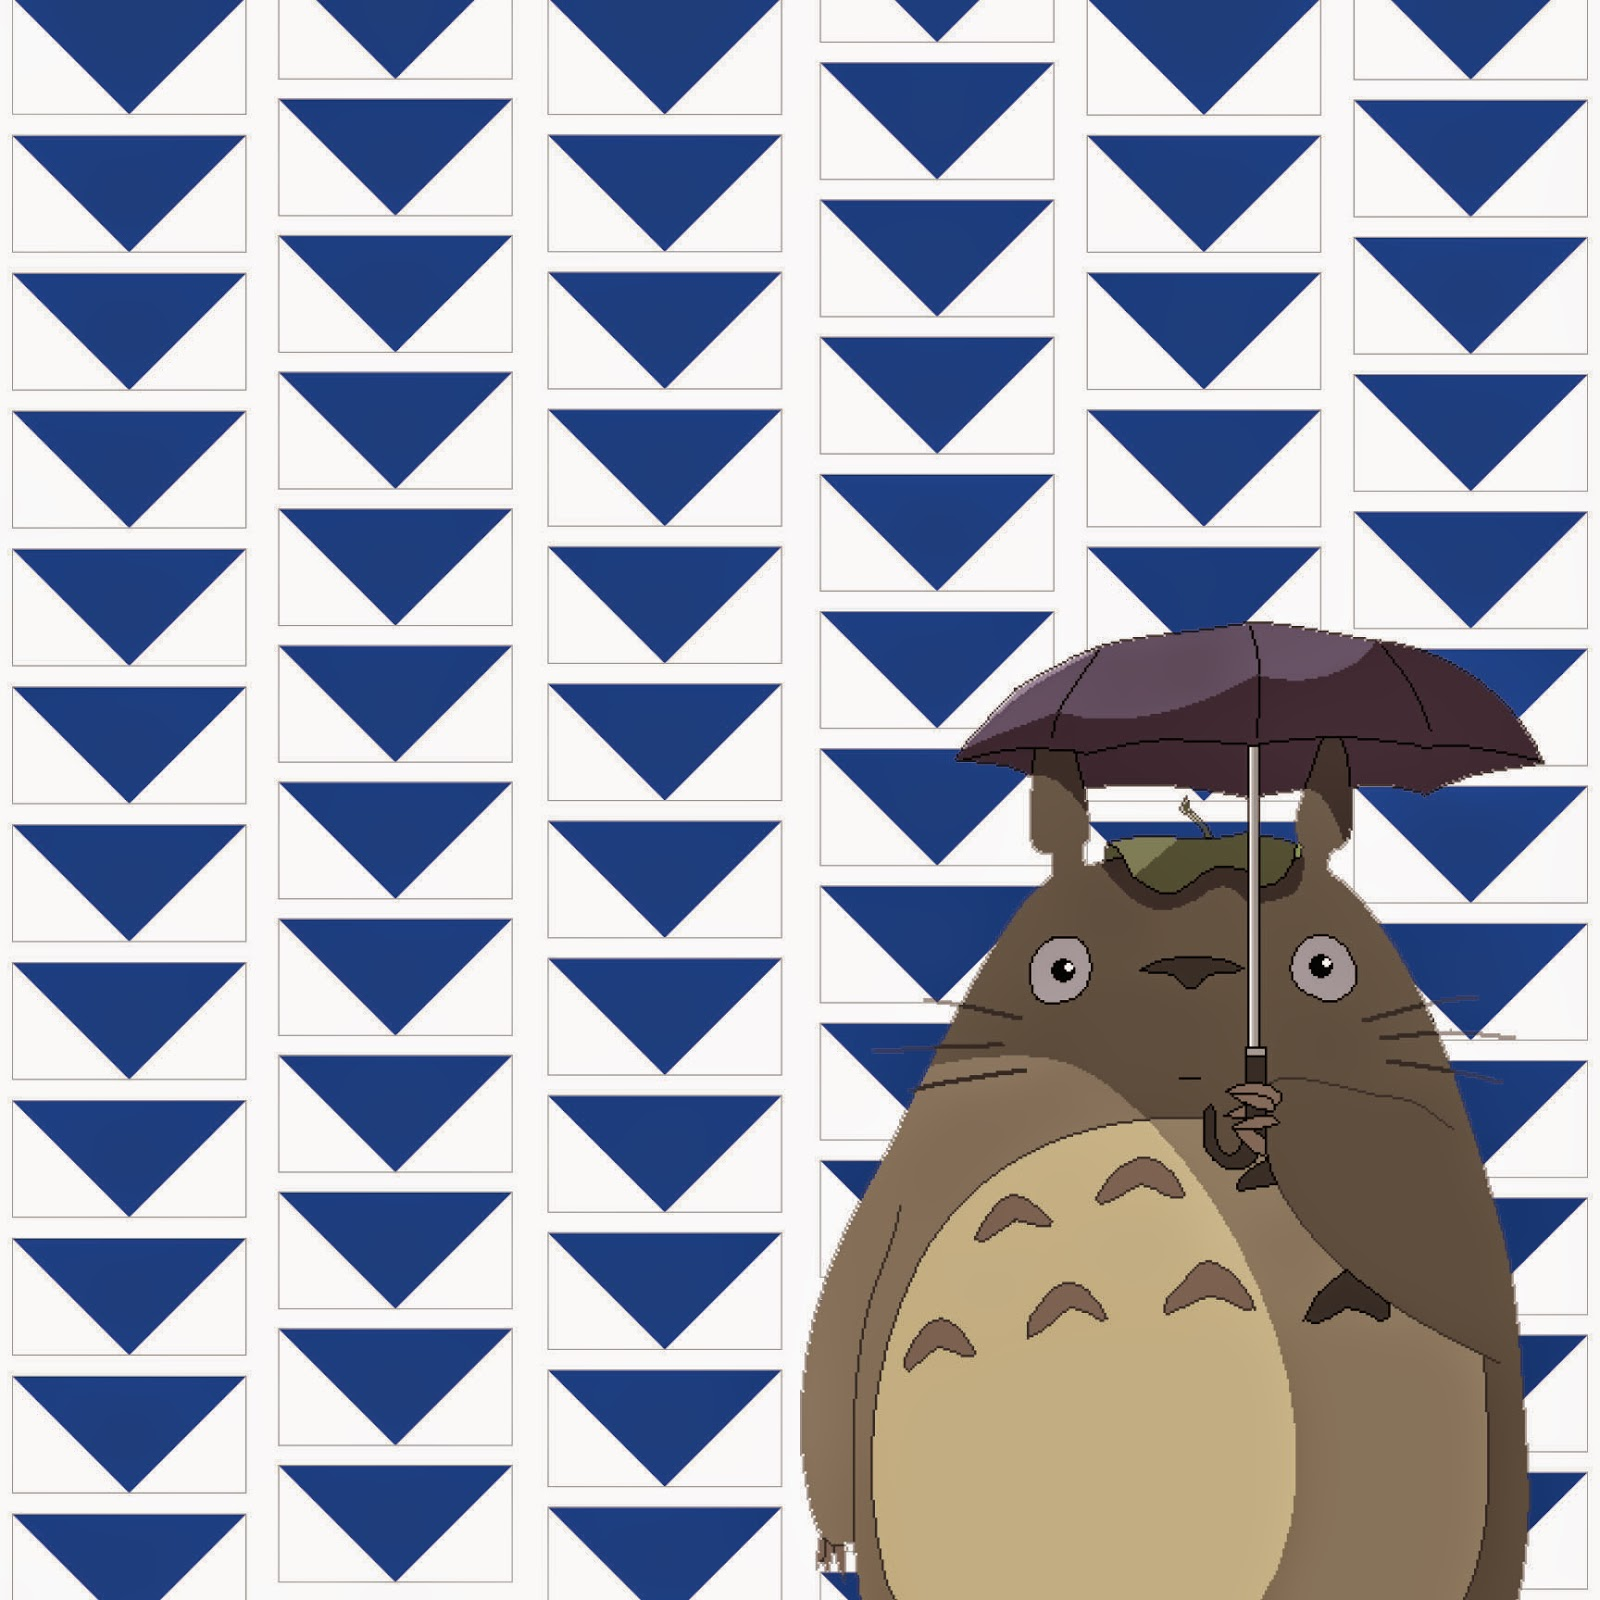 Totoro under flying geese blocks